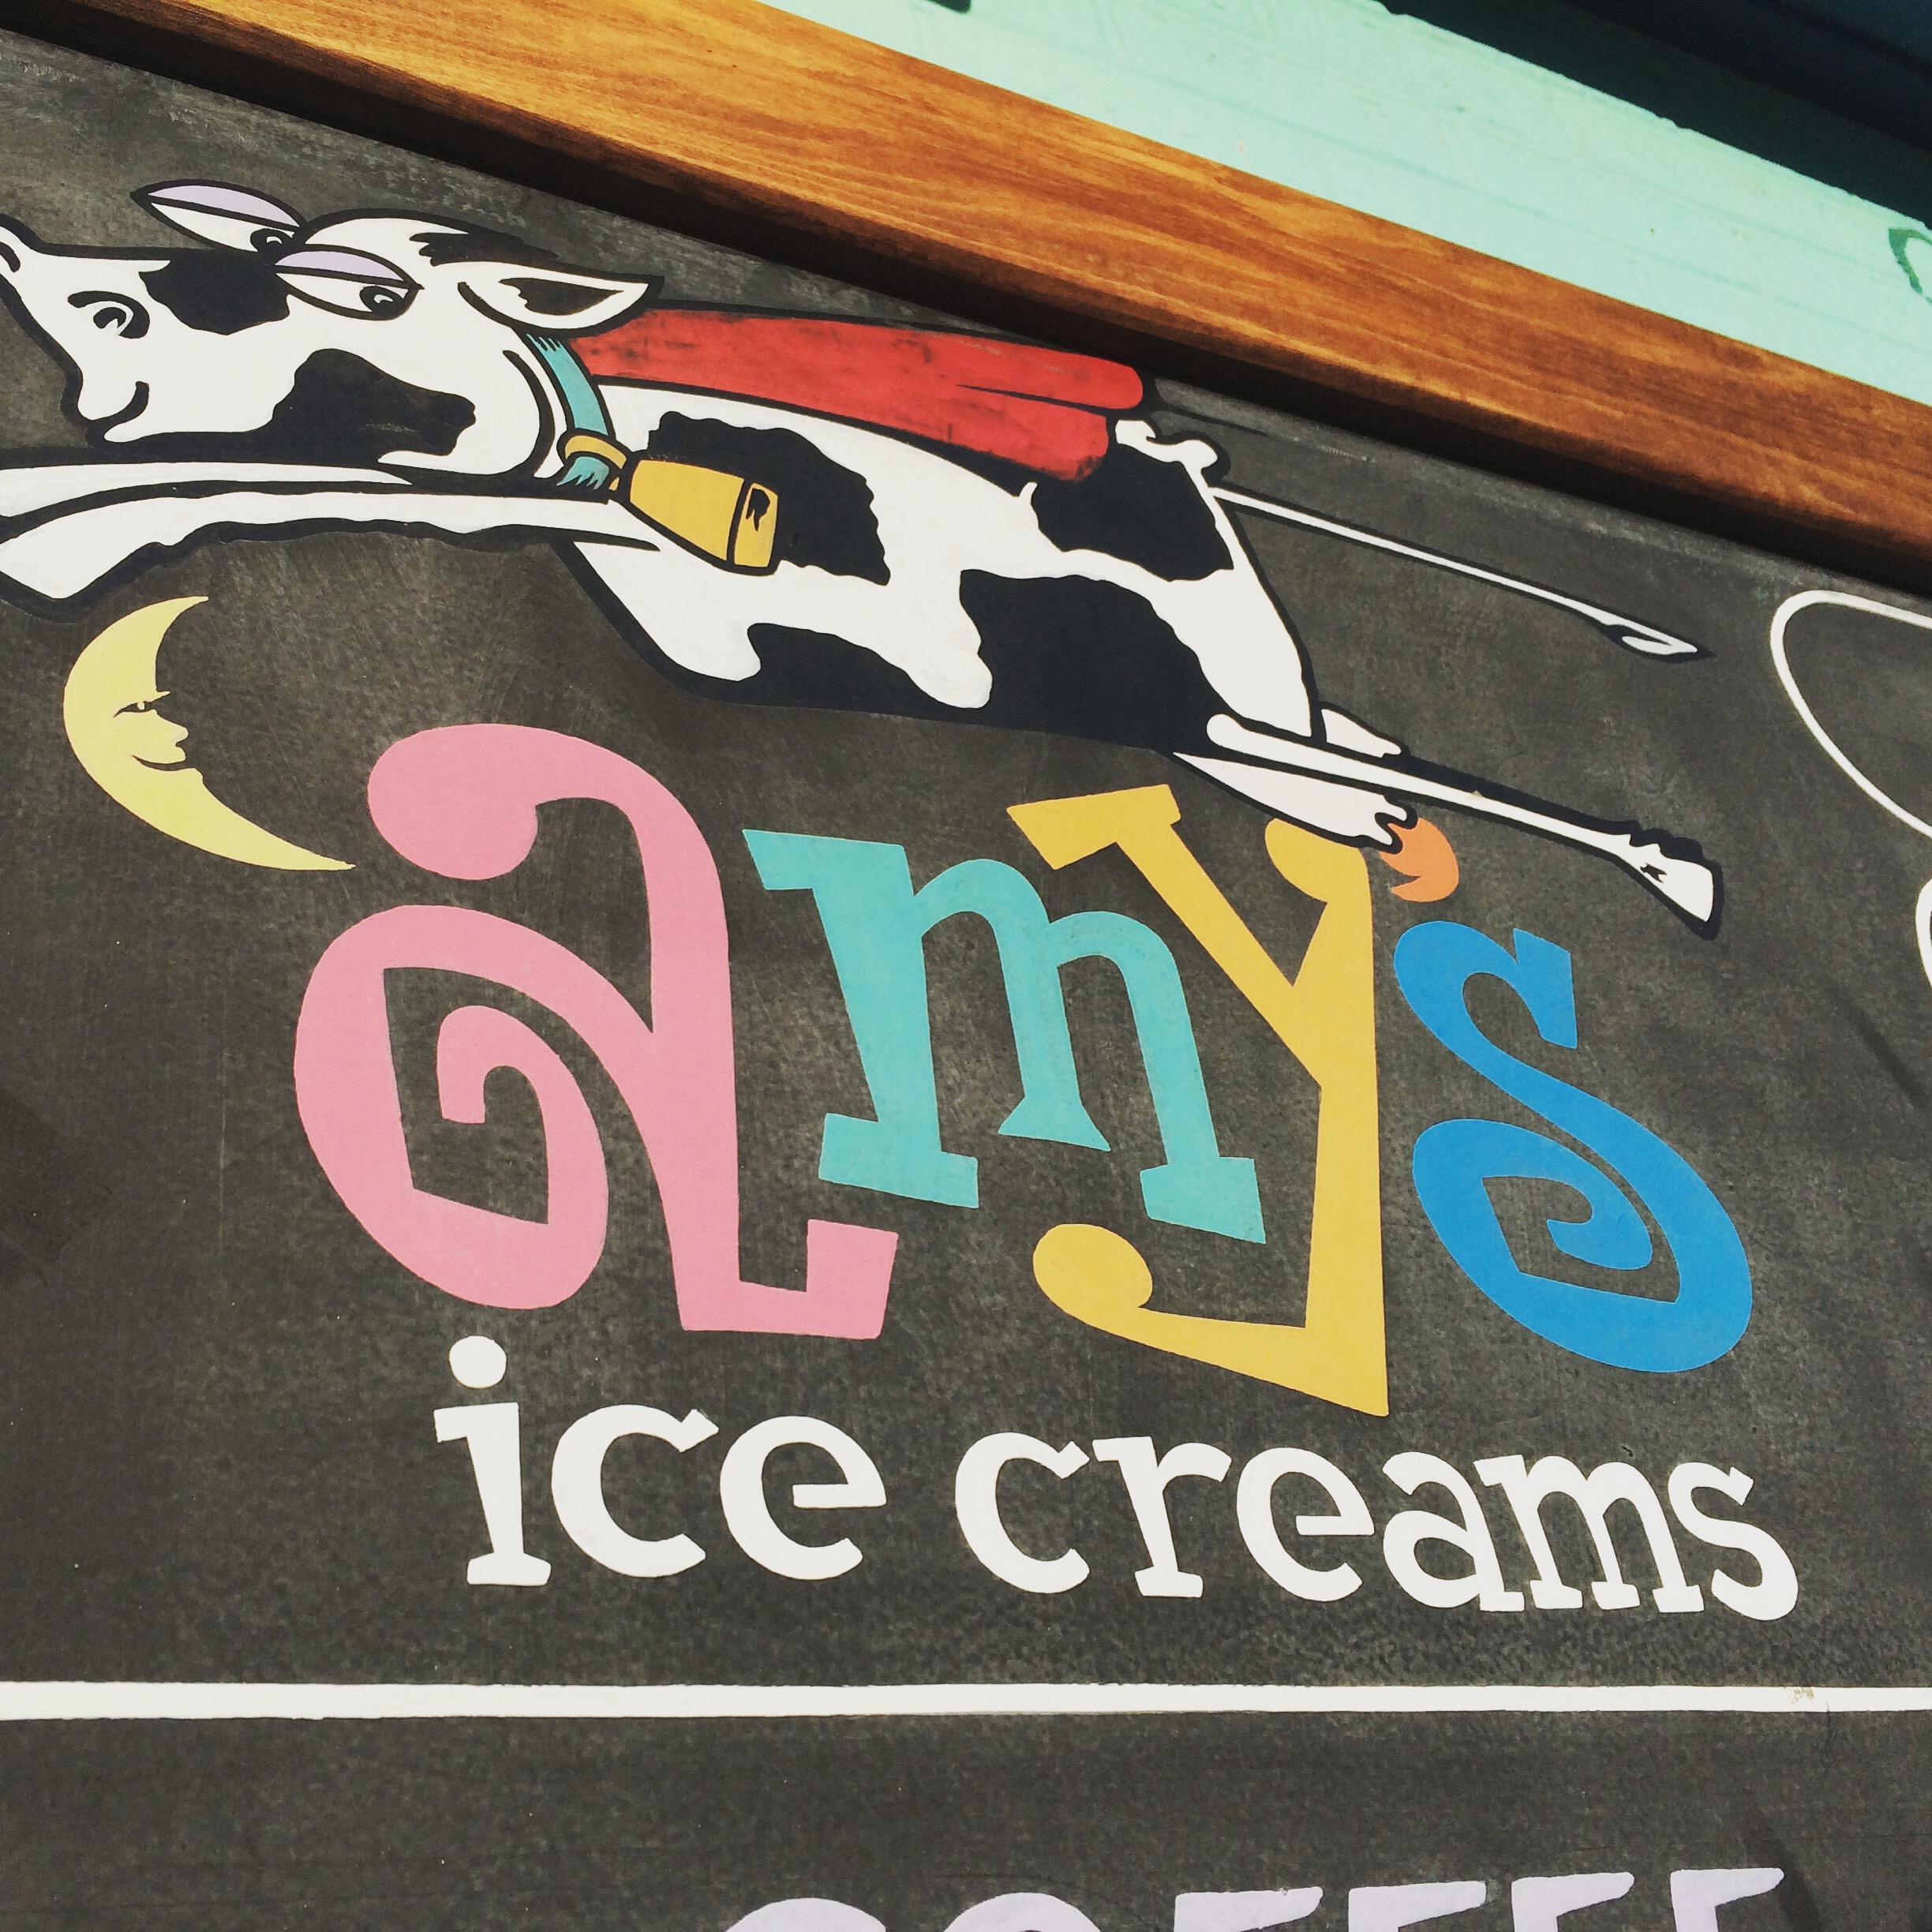 Obligatory trip to Amy's Ice Cream